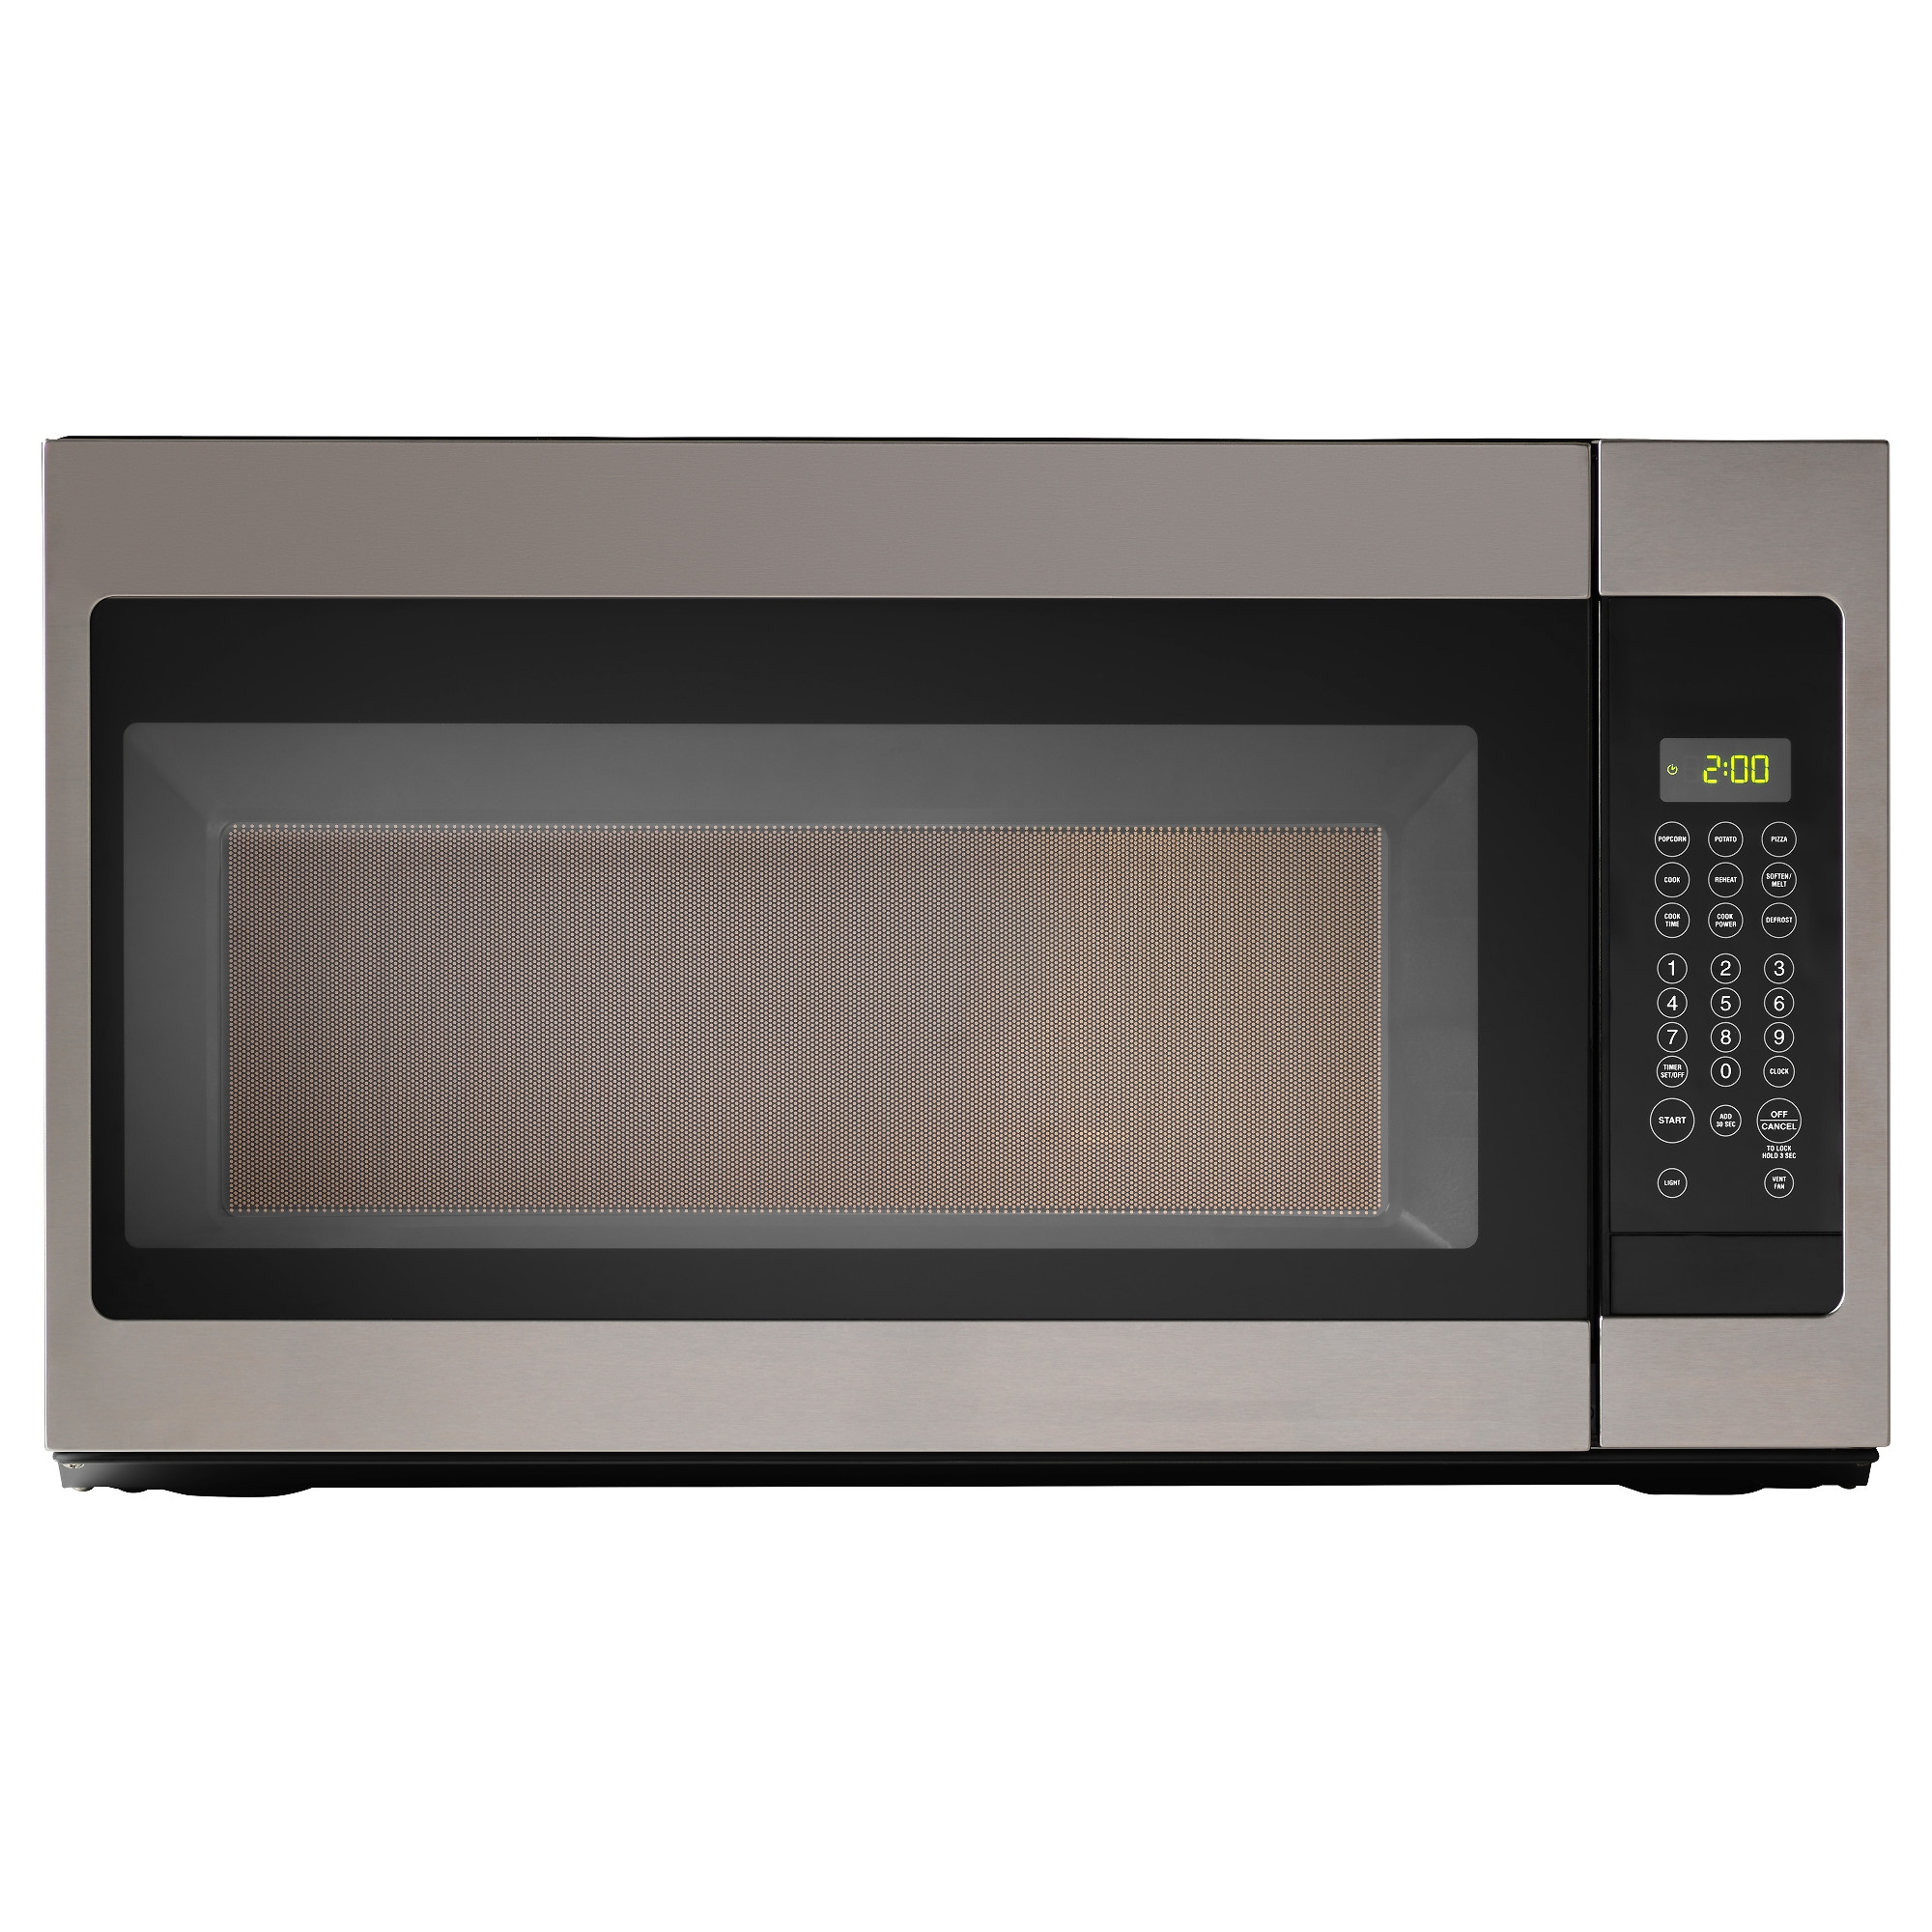 Betrodd Microwave Oven With Extractor Fan Ikea